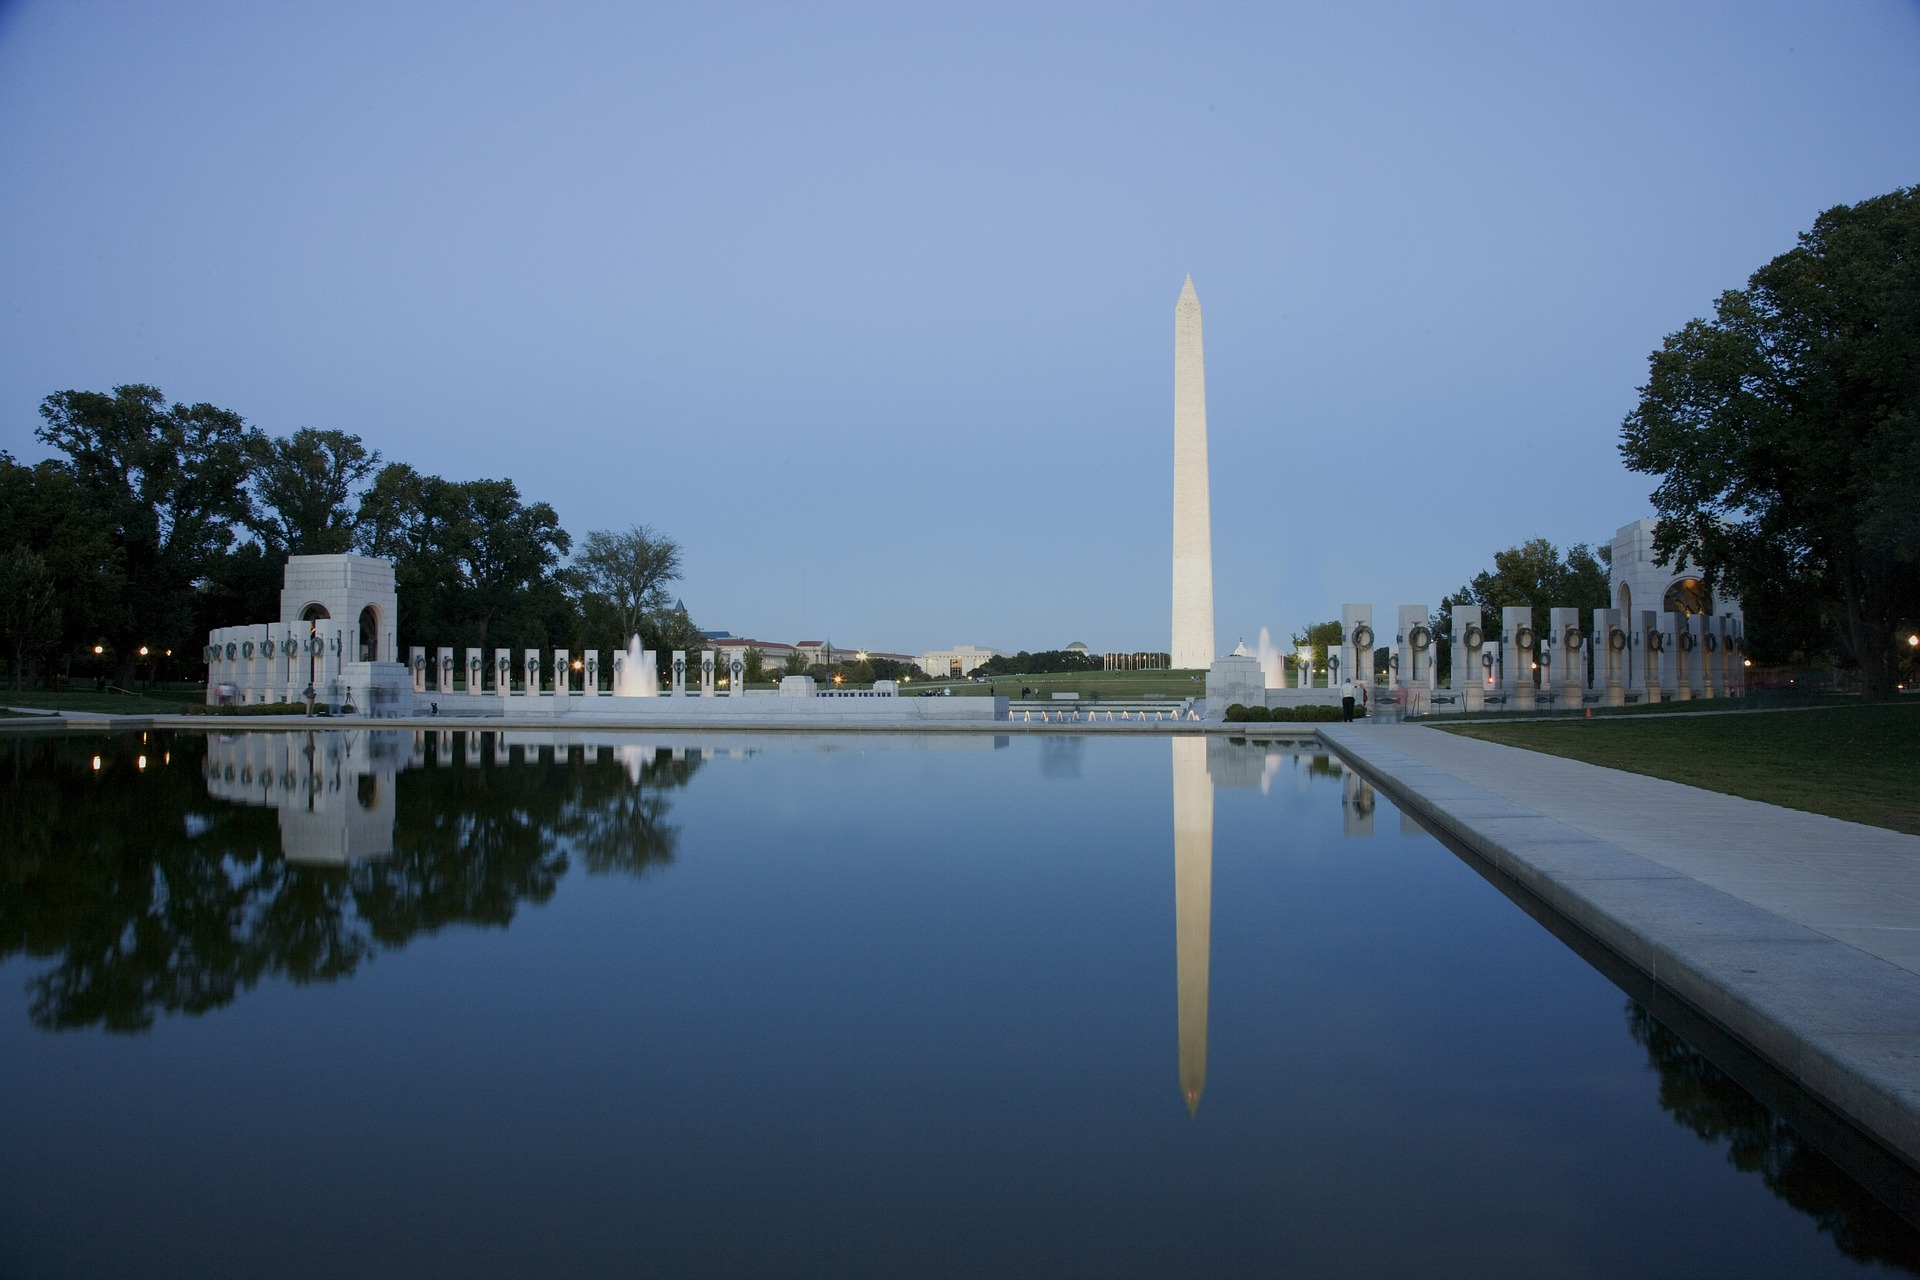 The World War II Memorial and Reflecting Pool